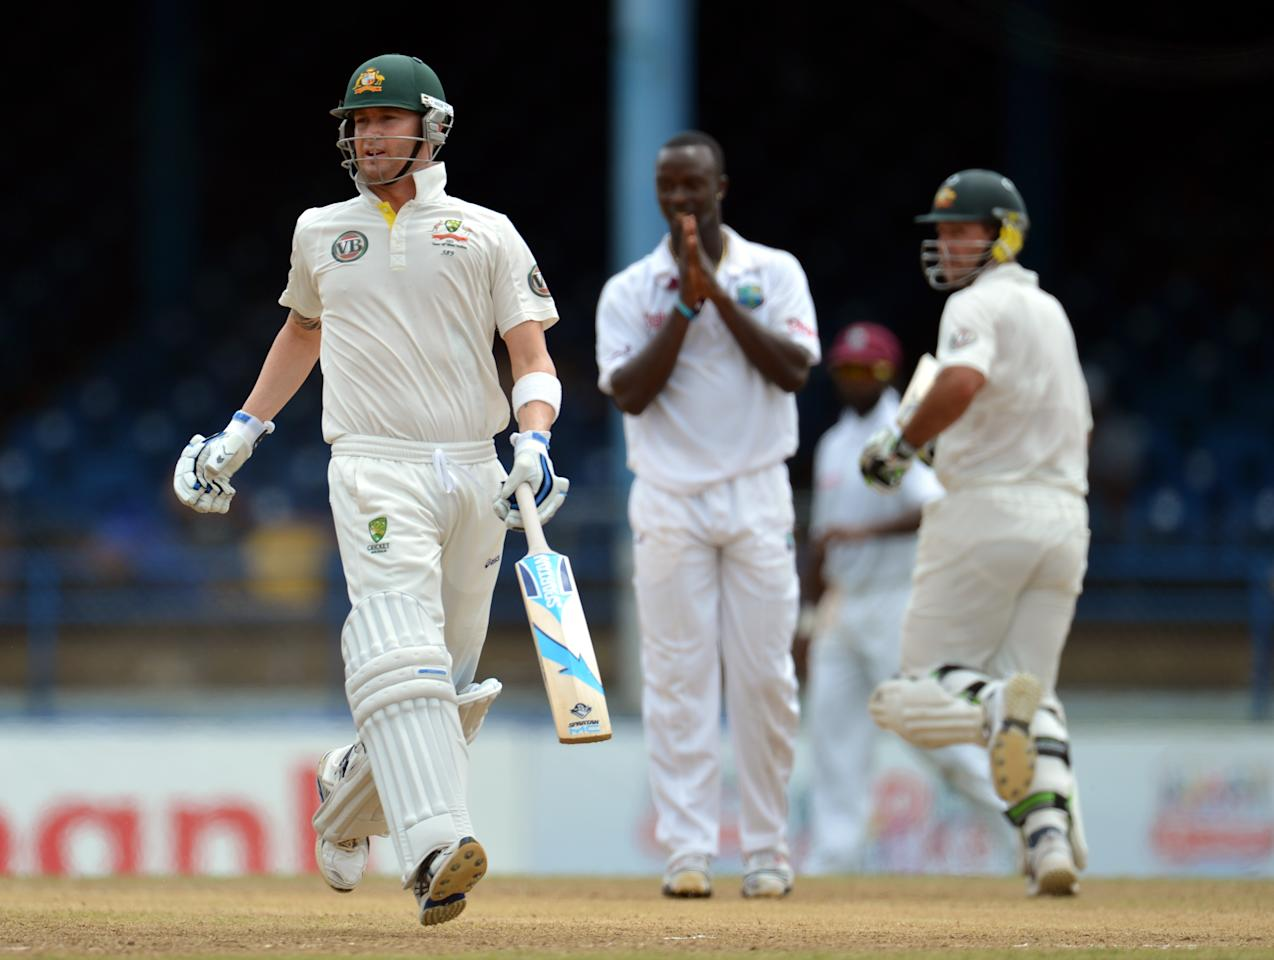 Australian batsmen Michael Clarke (L) and Ricky Ponting (R) run as West Indies bowler Kemar Roach (C) reacts during the fourth day of the second-of-three Test matches between Australia and West Indies April 18, 2012 at Queen's Park Oval in Port of Spain, Trinidad.